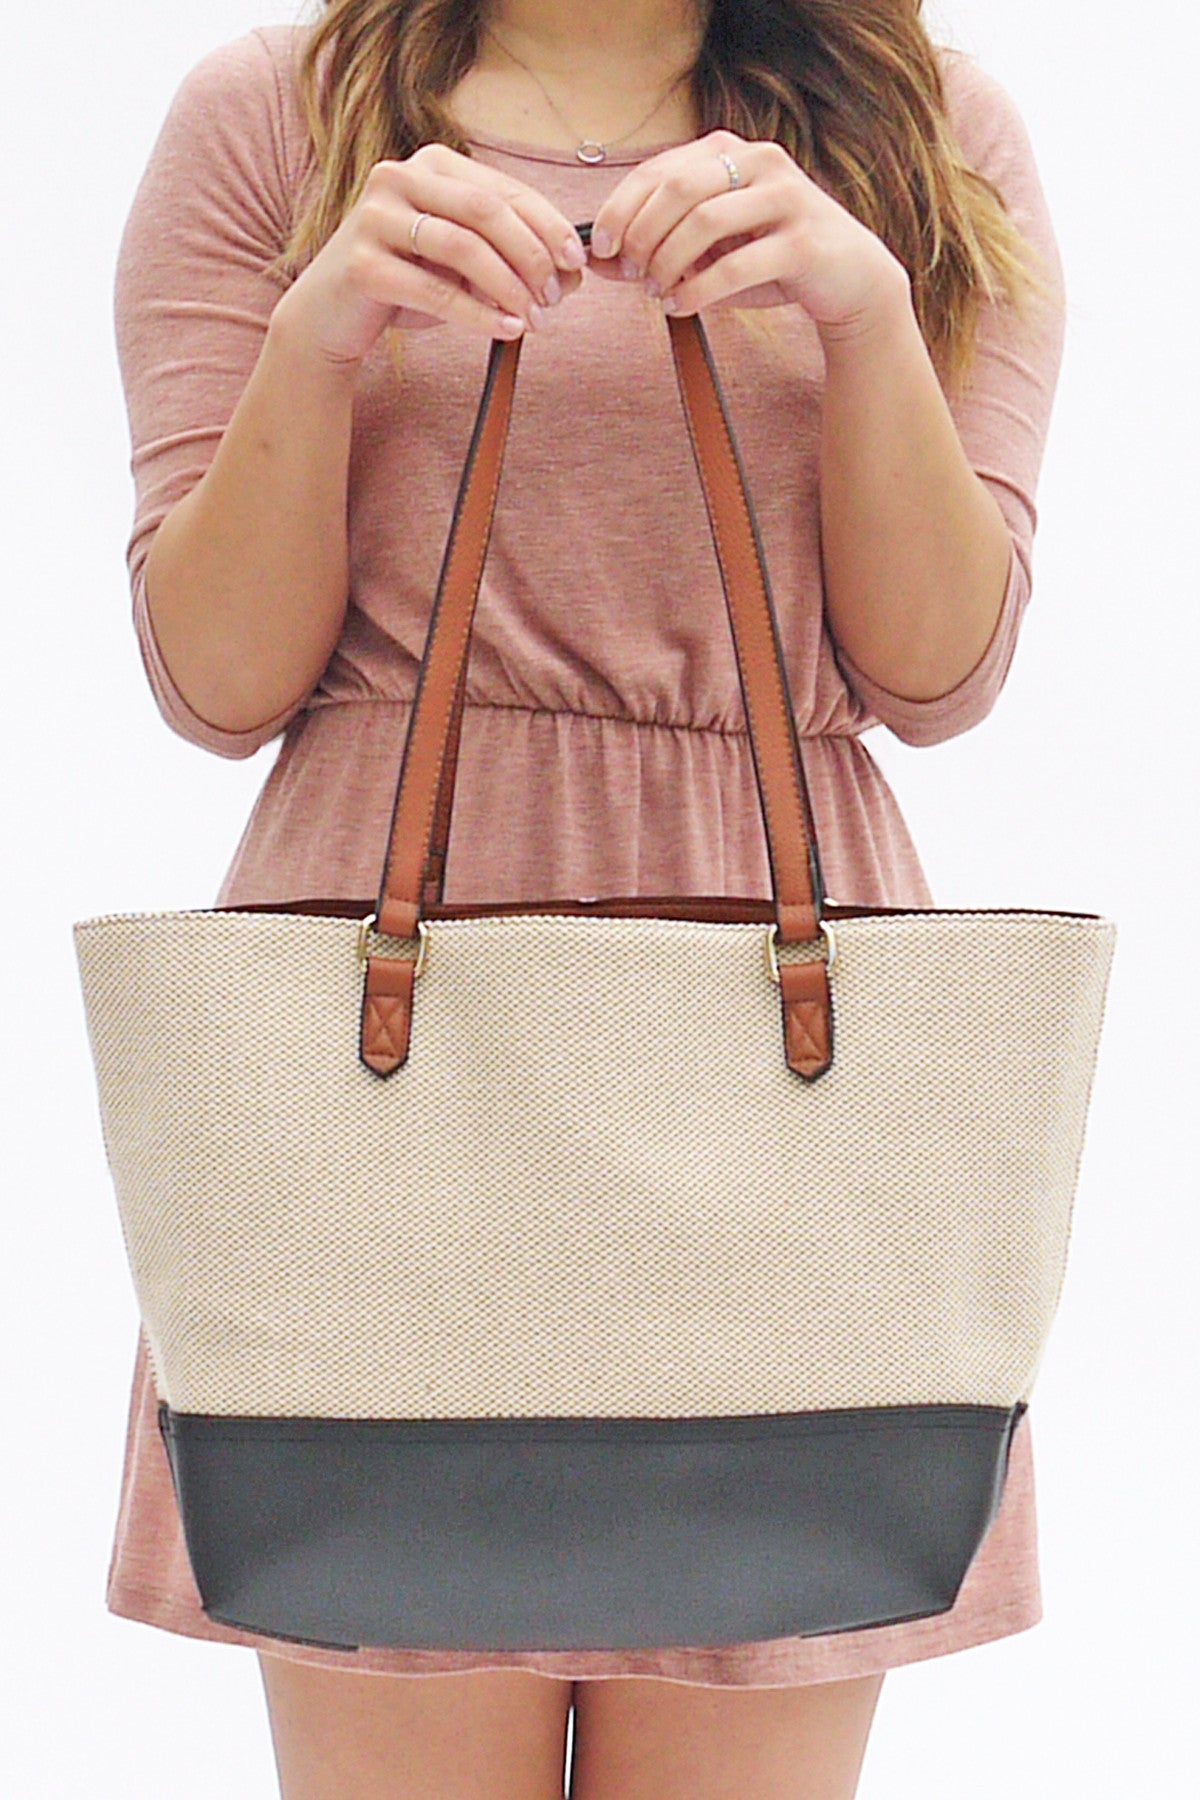 99f056b471 Adele Two Tone Woven Tote with Clutch - A Few Things We Love - 1 ...